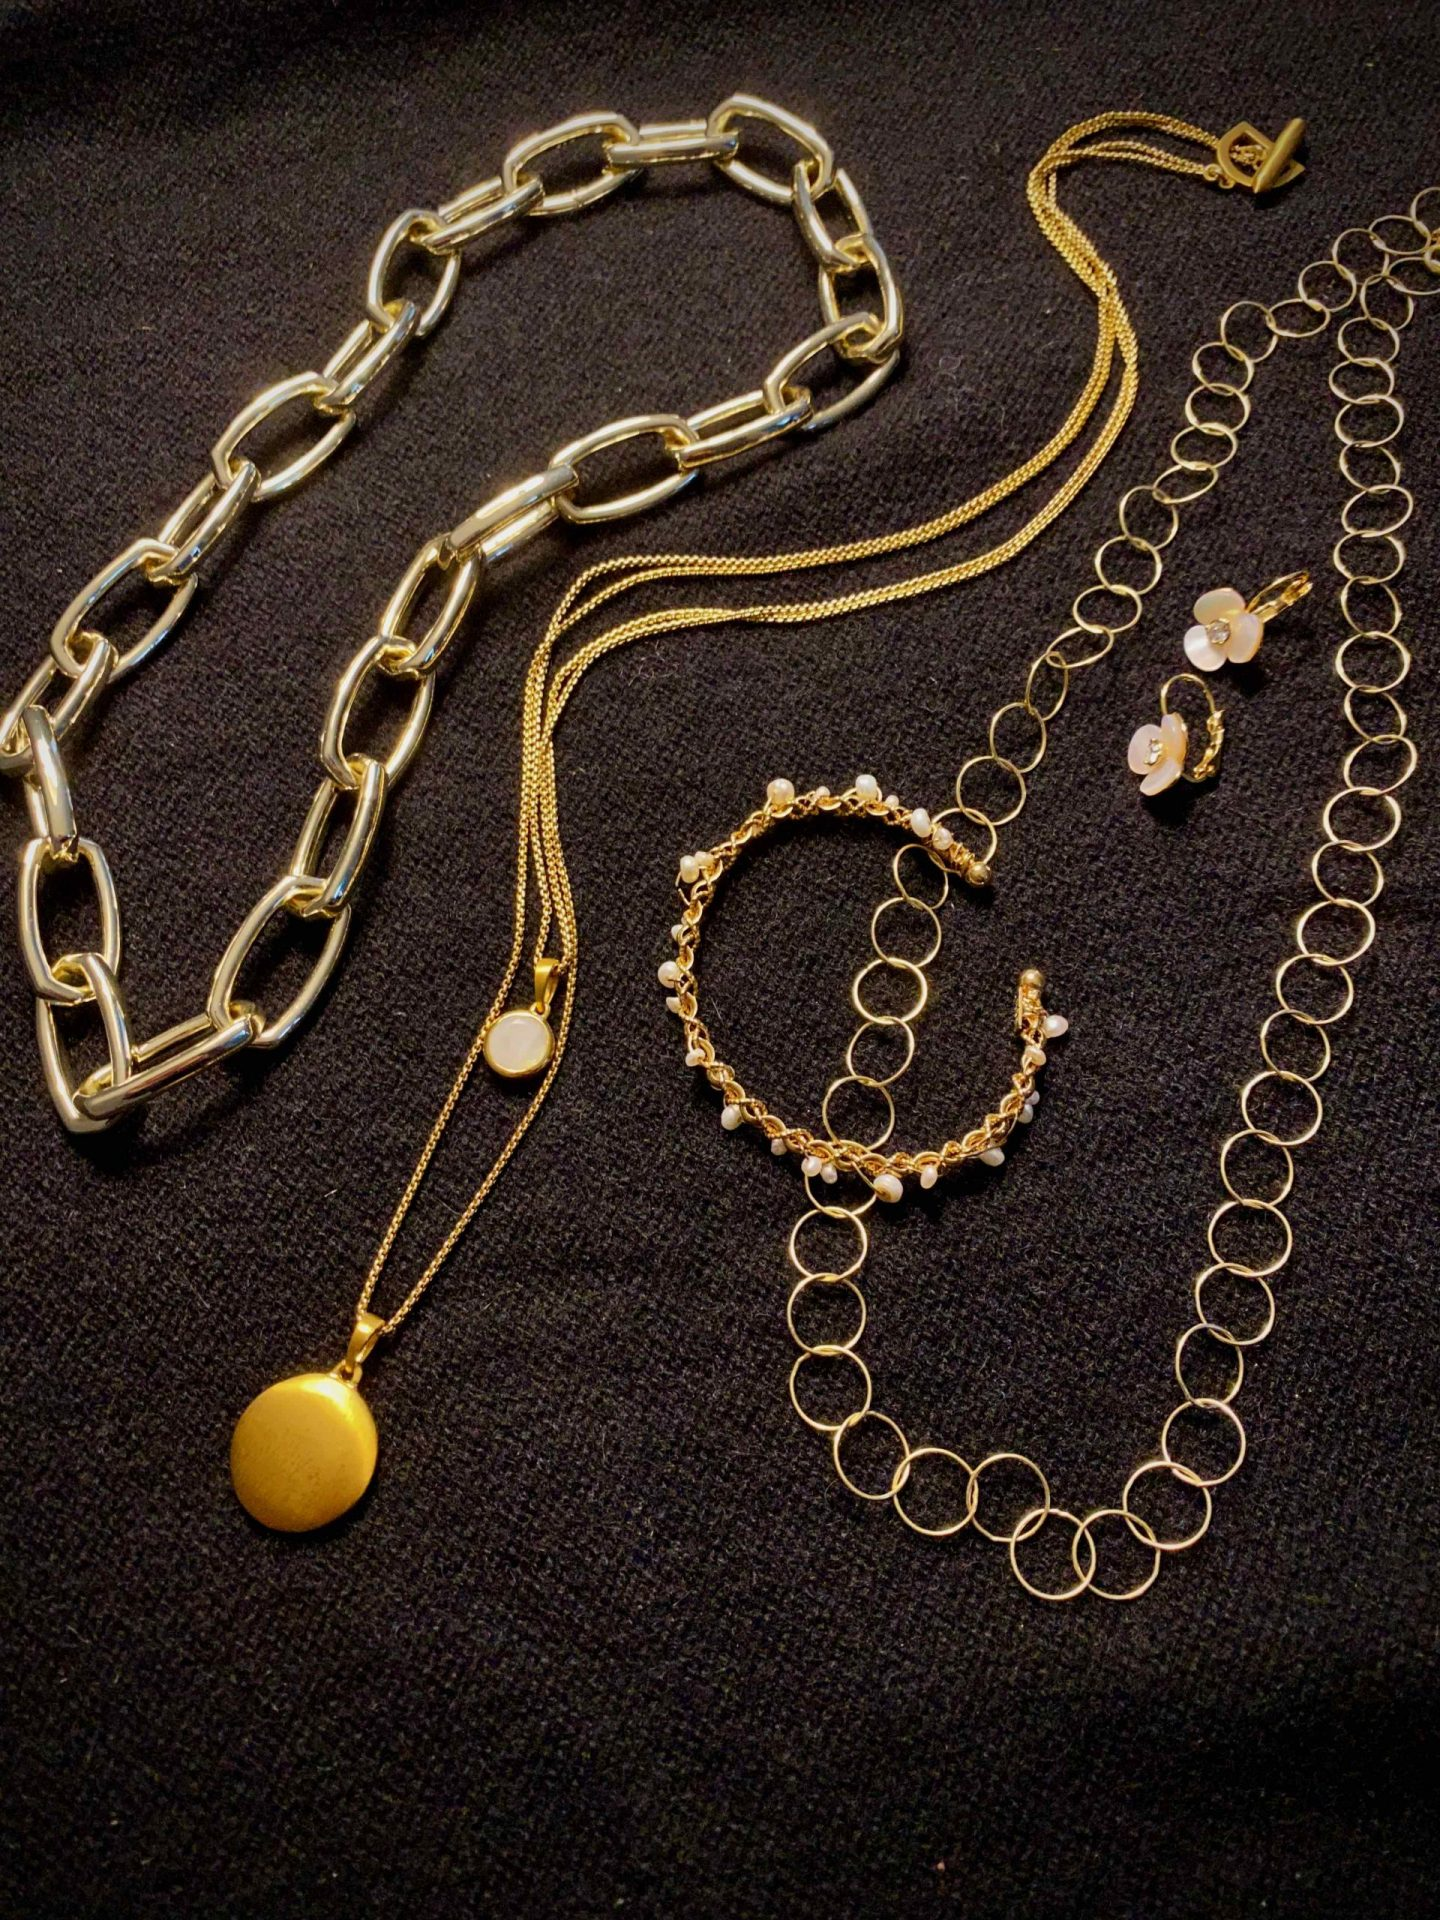 Collection of Gold Jewelry | The Spectacular Adventurer